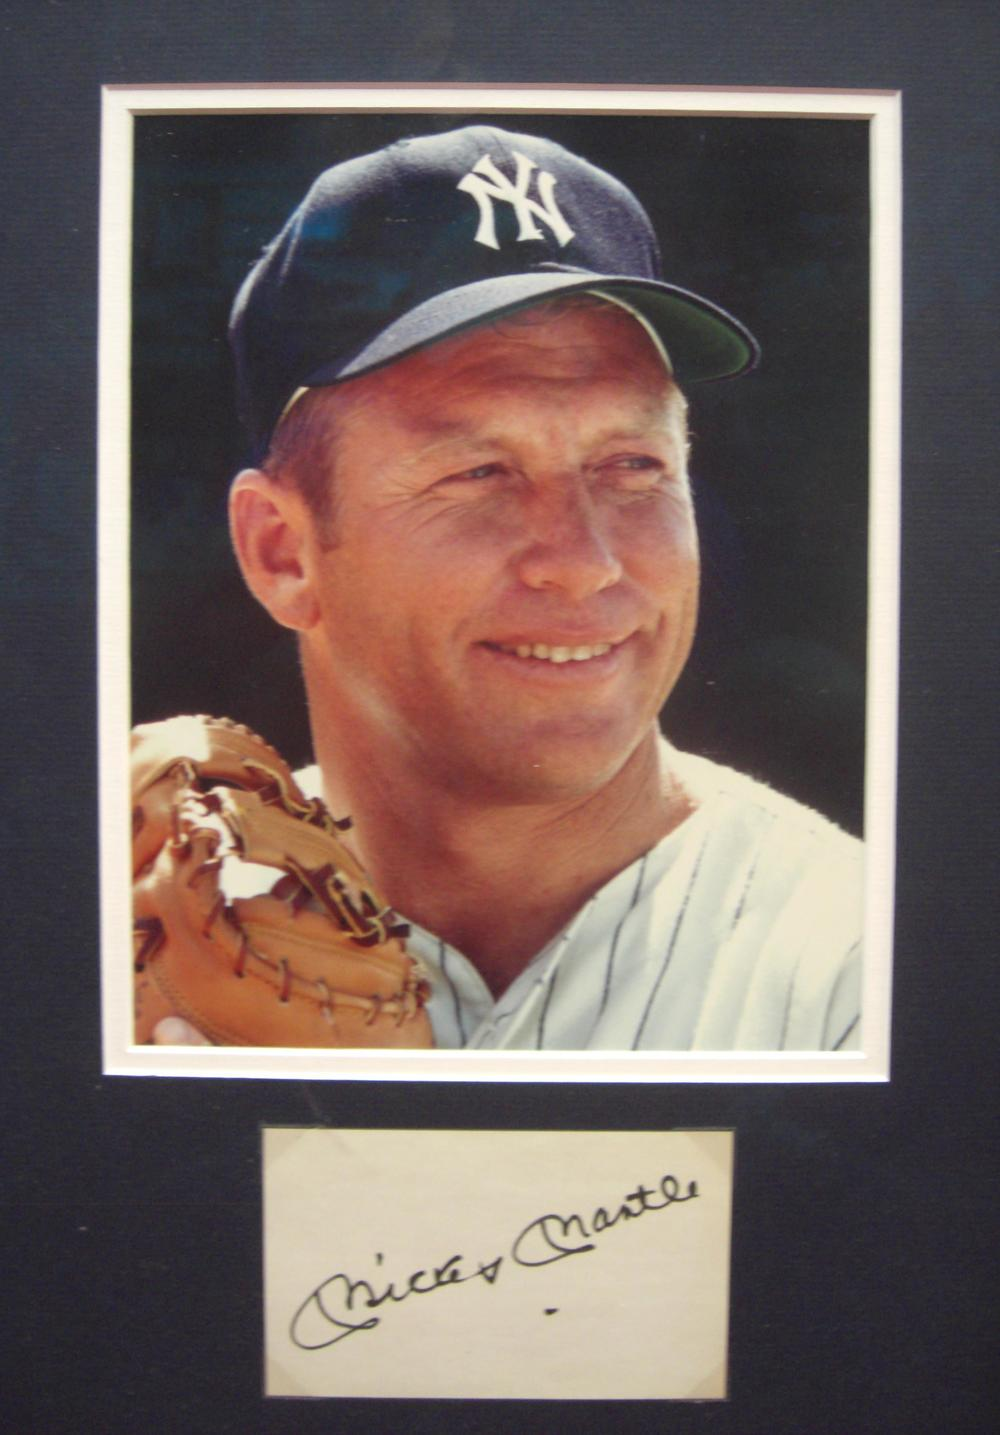 Mickey Mantle signed index card with Neil Leifer framed photo